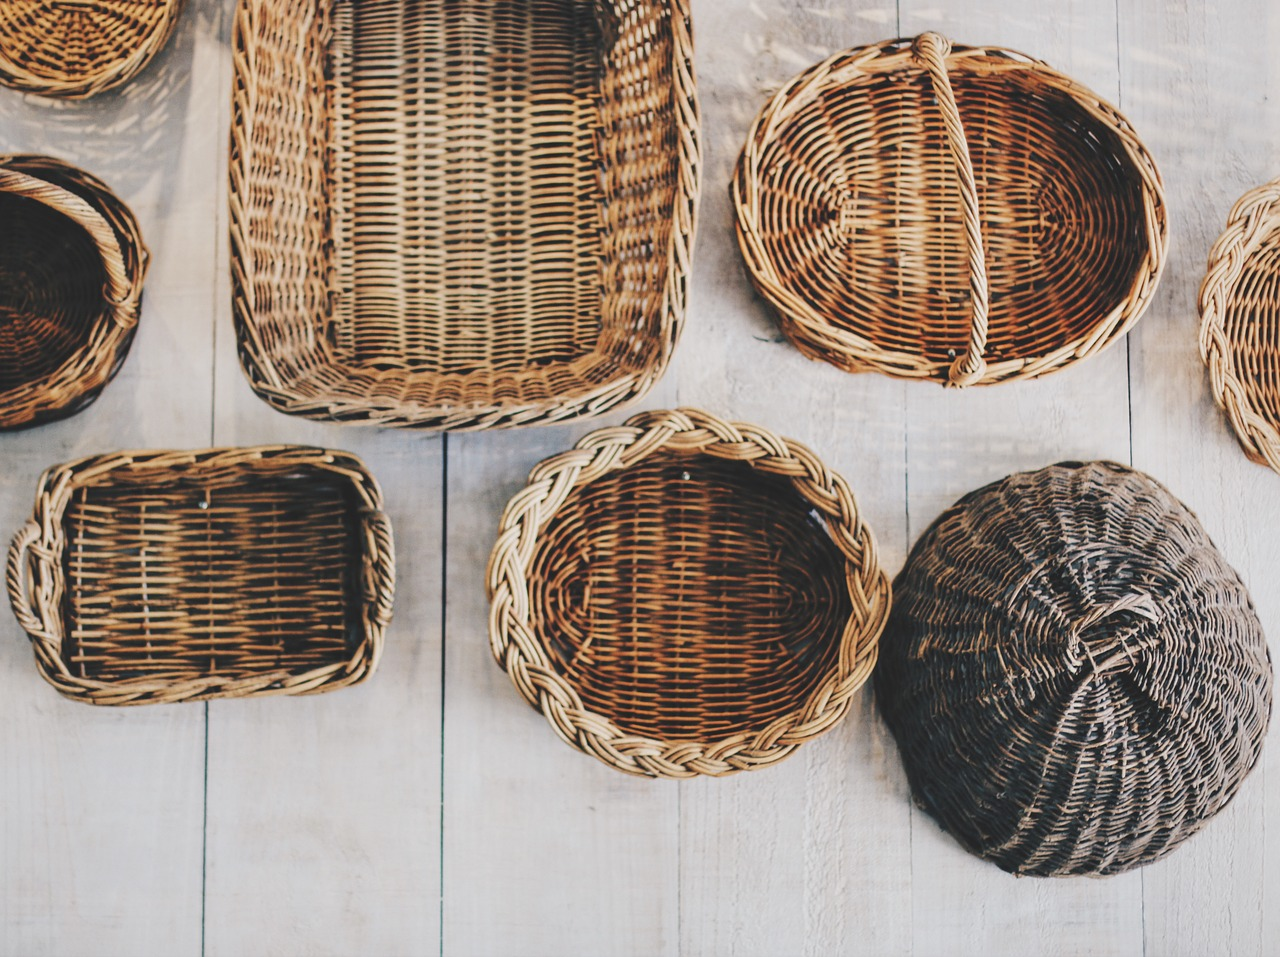 Baskets of a variety of sizes and shapes